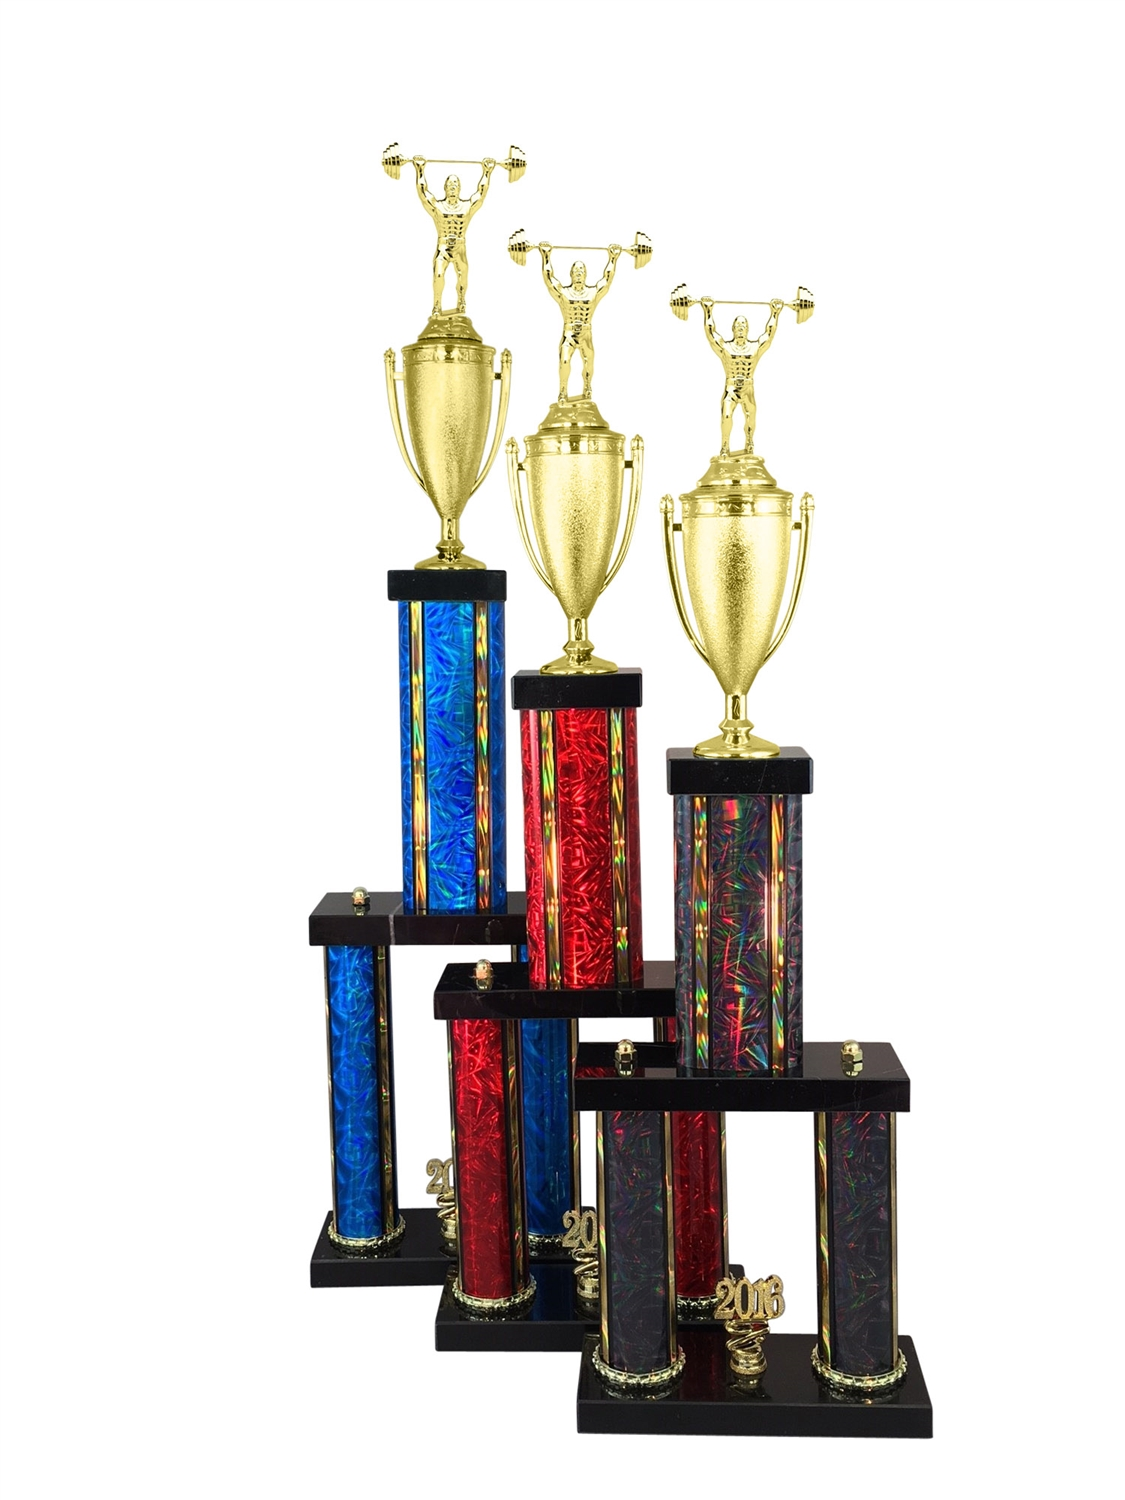 2 Column Weightlifting Trophy in 11 Color & 6 Size Options